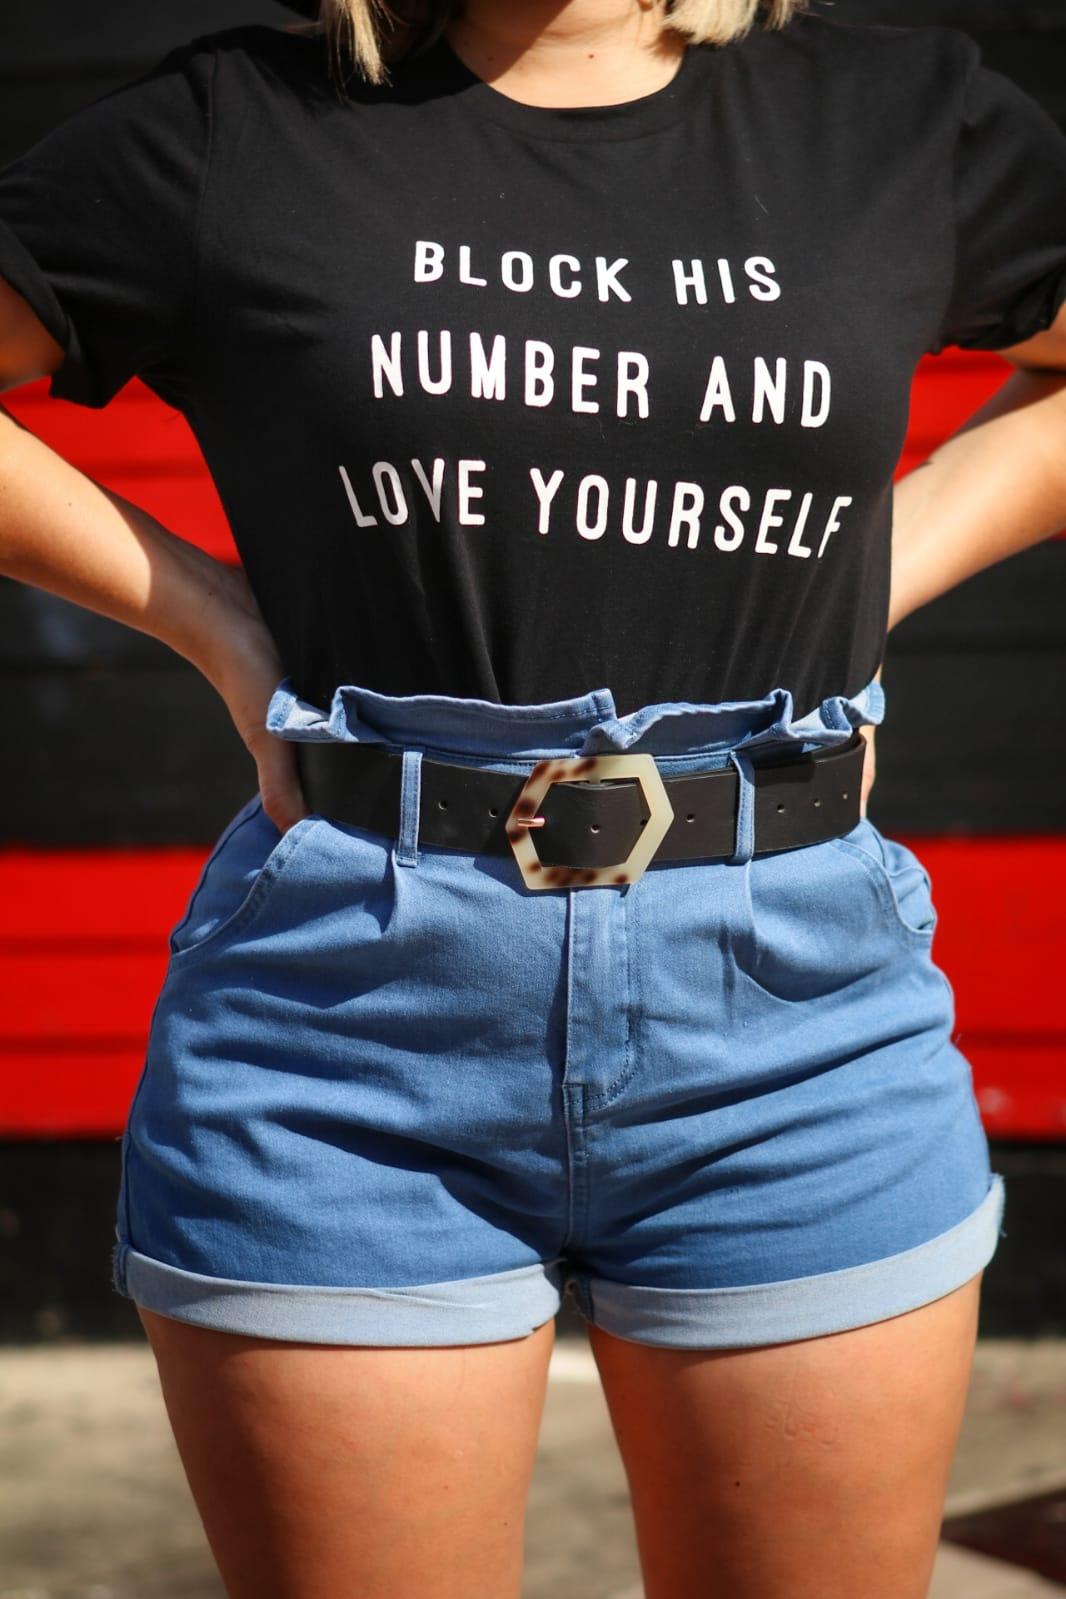 Love yourself T Shirt